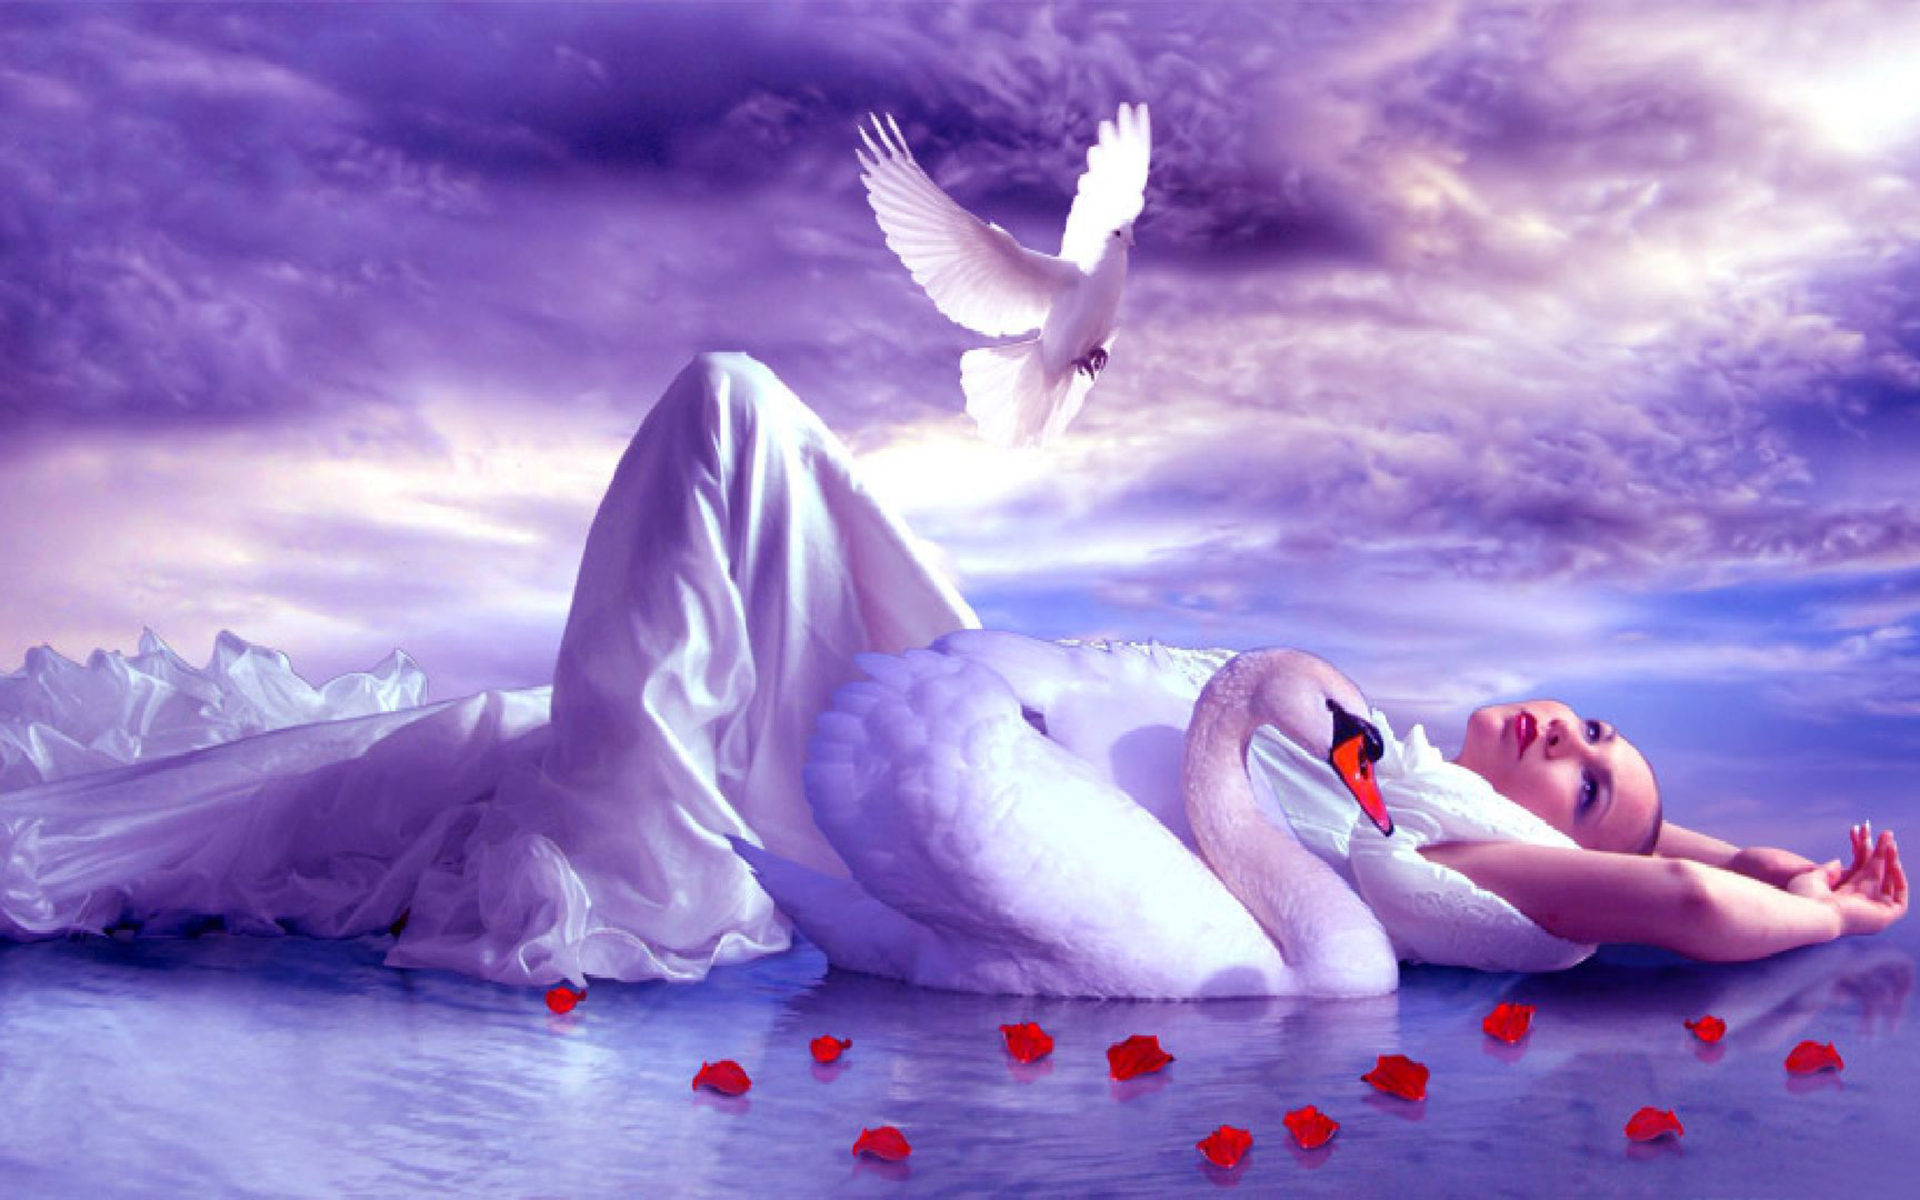 Pretty Girl Wallpaper Free Download Girl Lake Accompaniment Of A Swan And Golub Sky With White